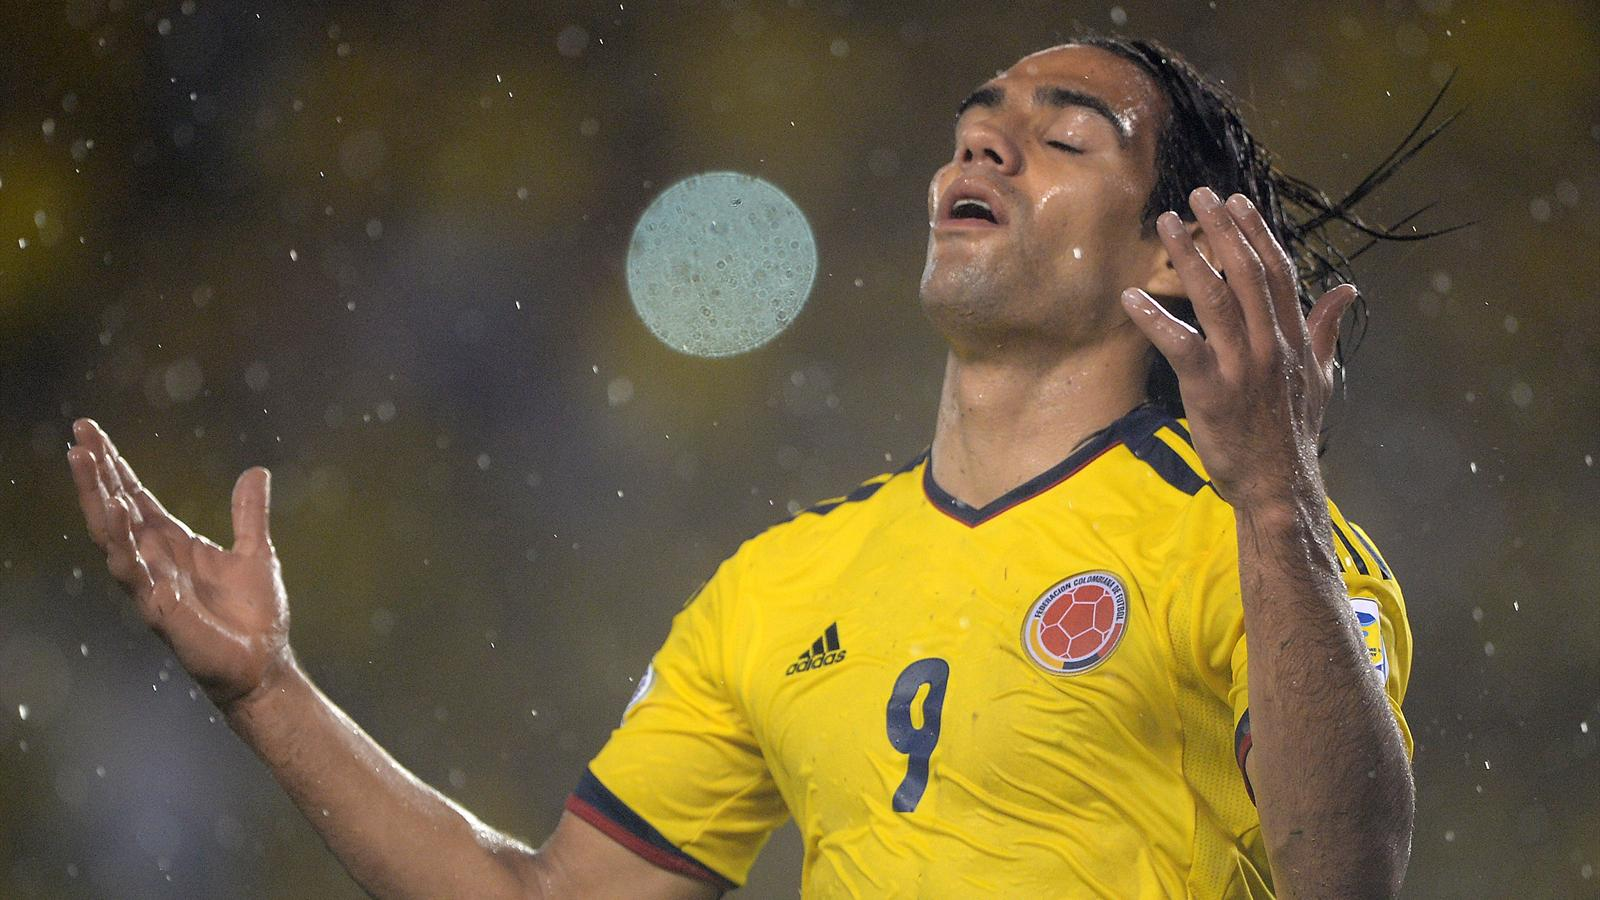 2013 Radamel Falcao, Colombia (AFP)